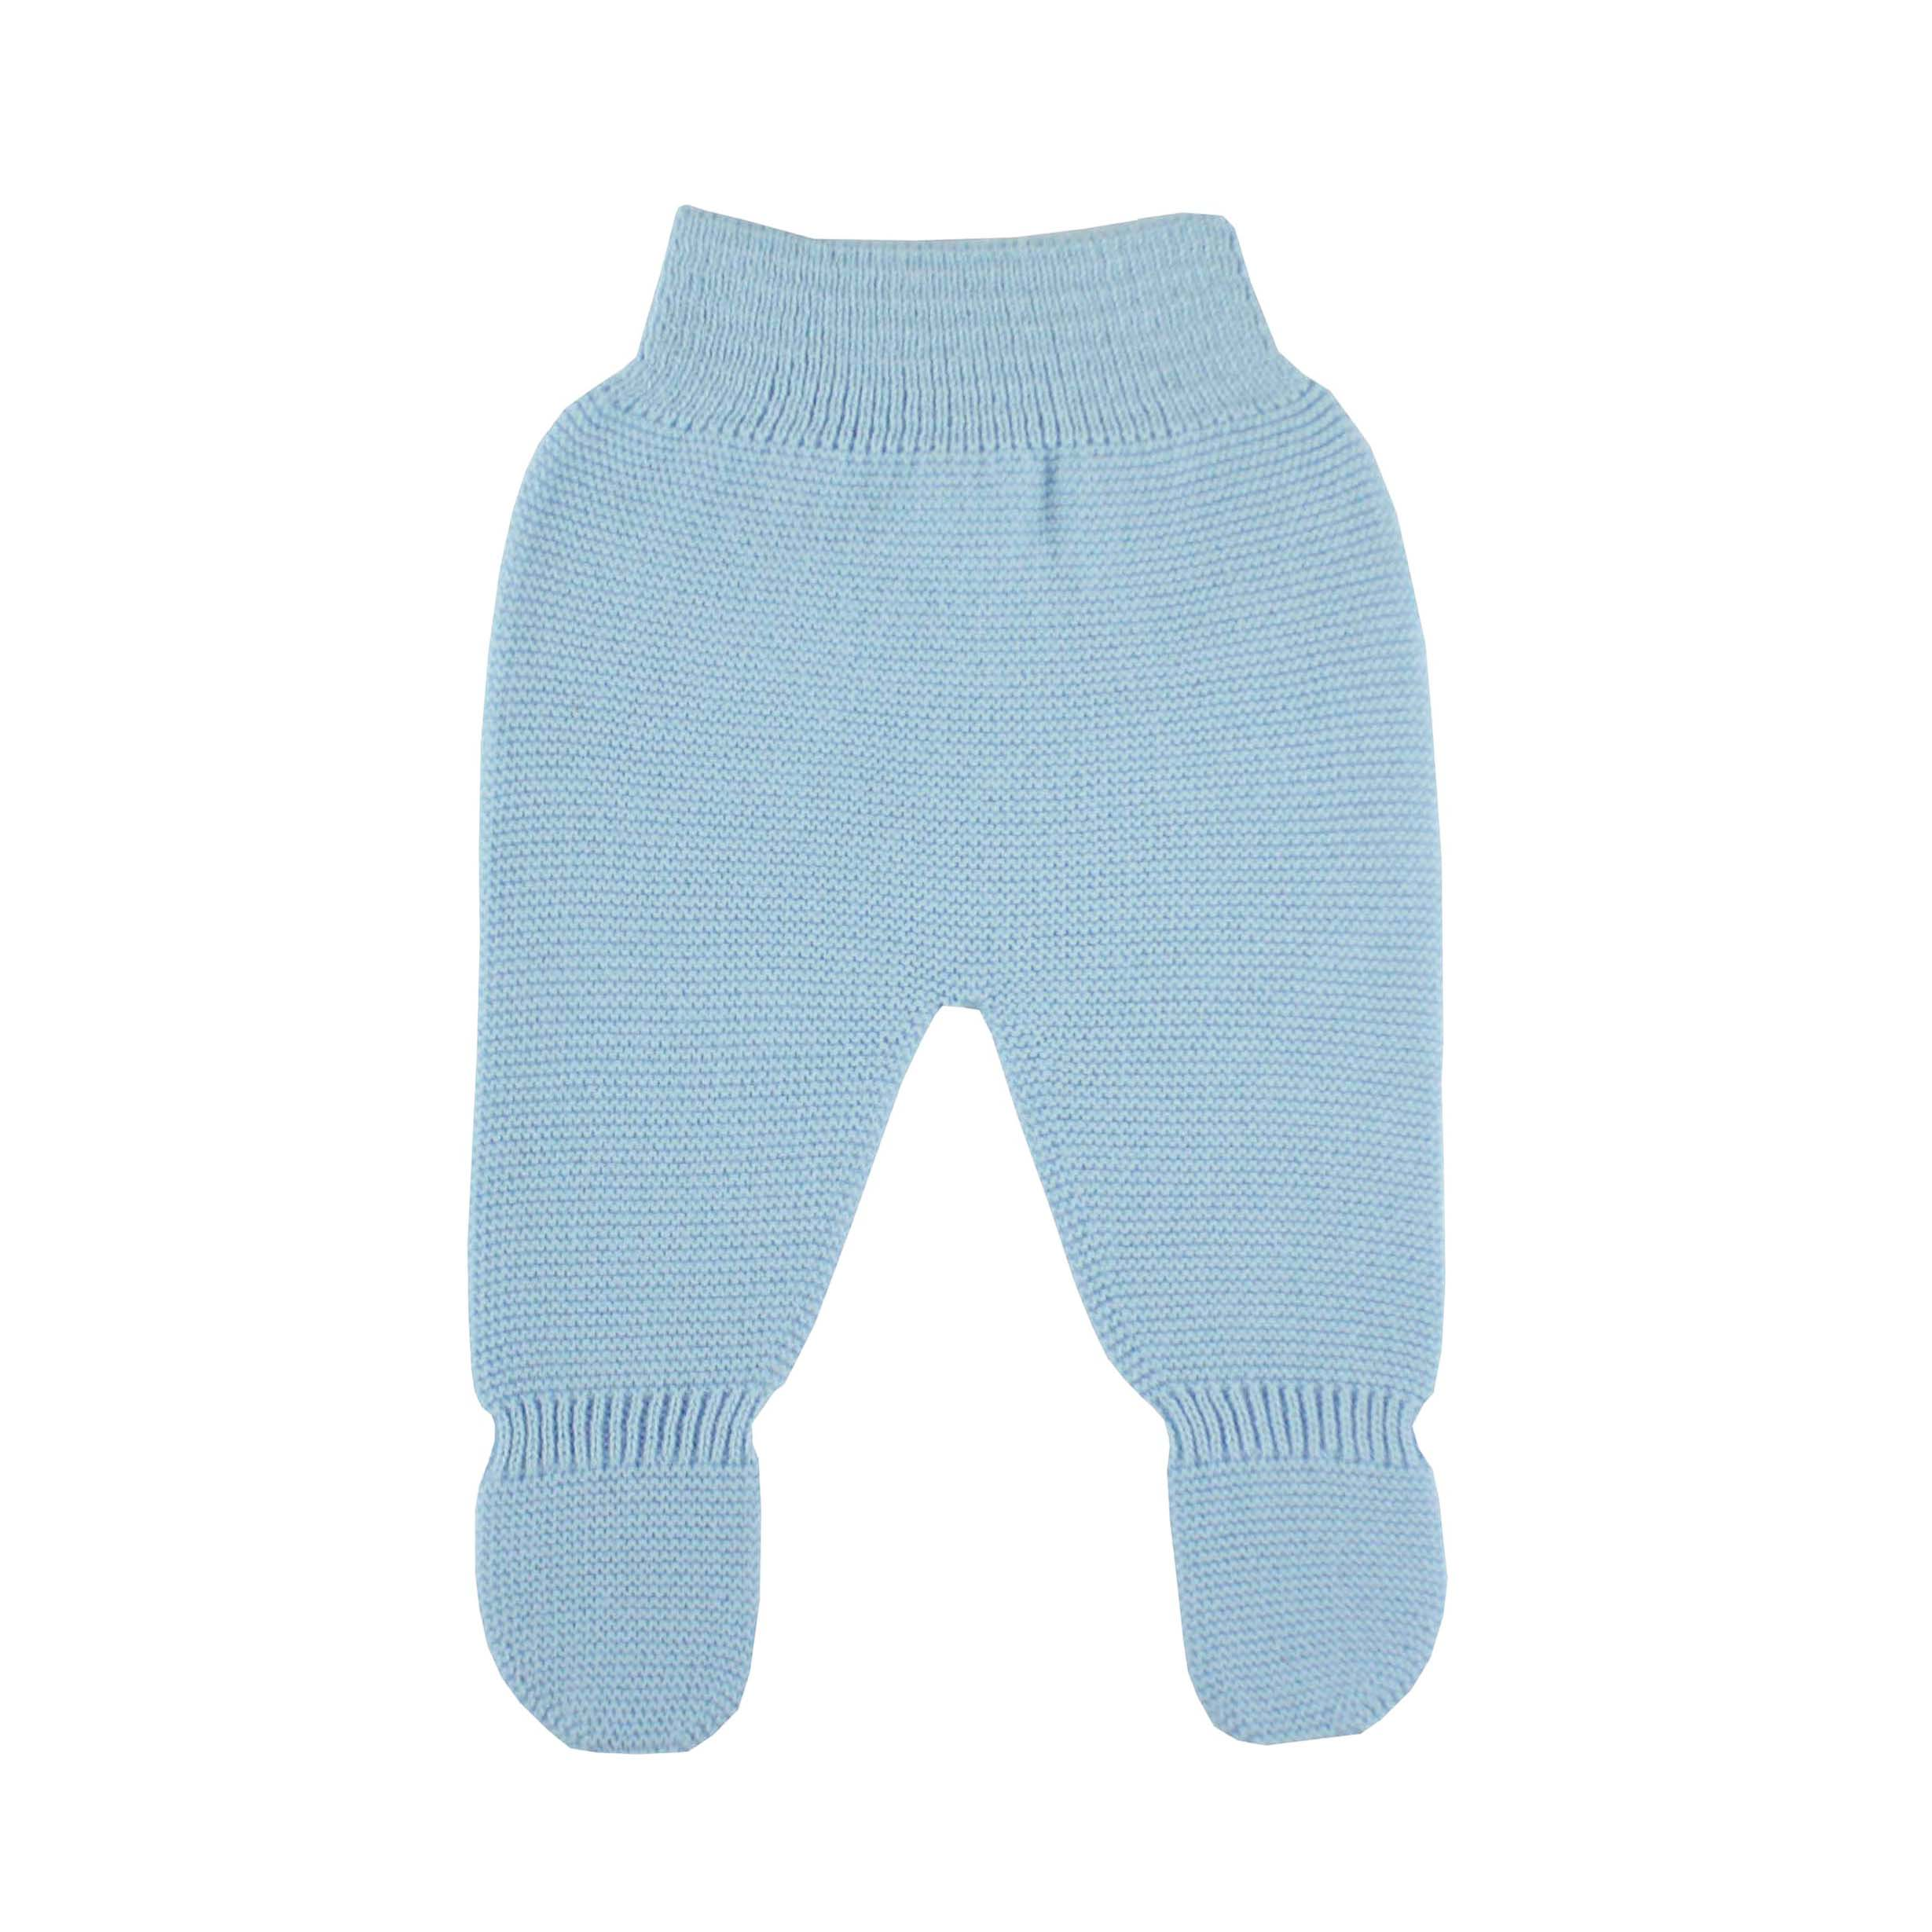 6f64a78e12190 Blue Thick knit leggings baby.